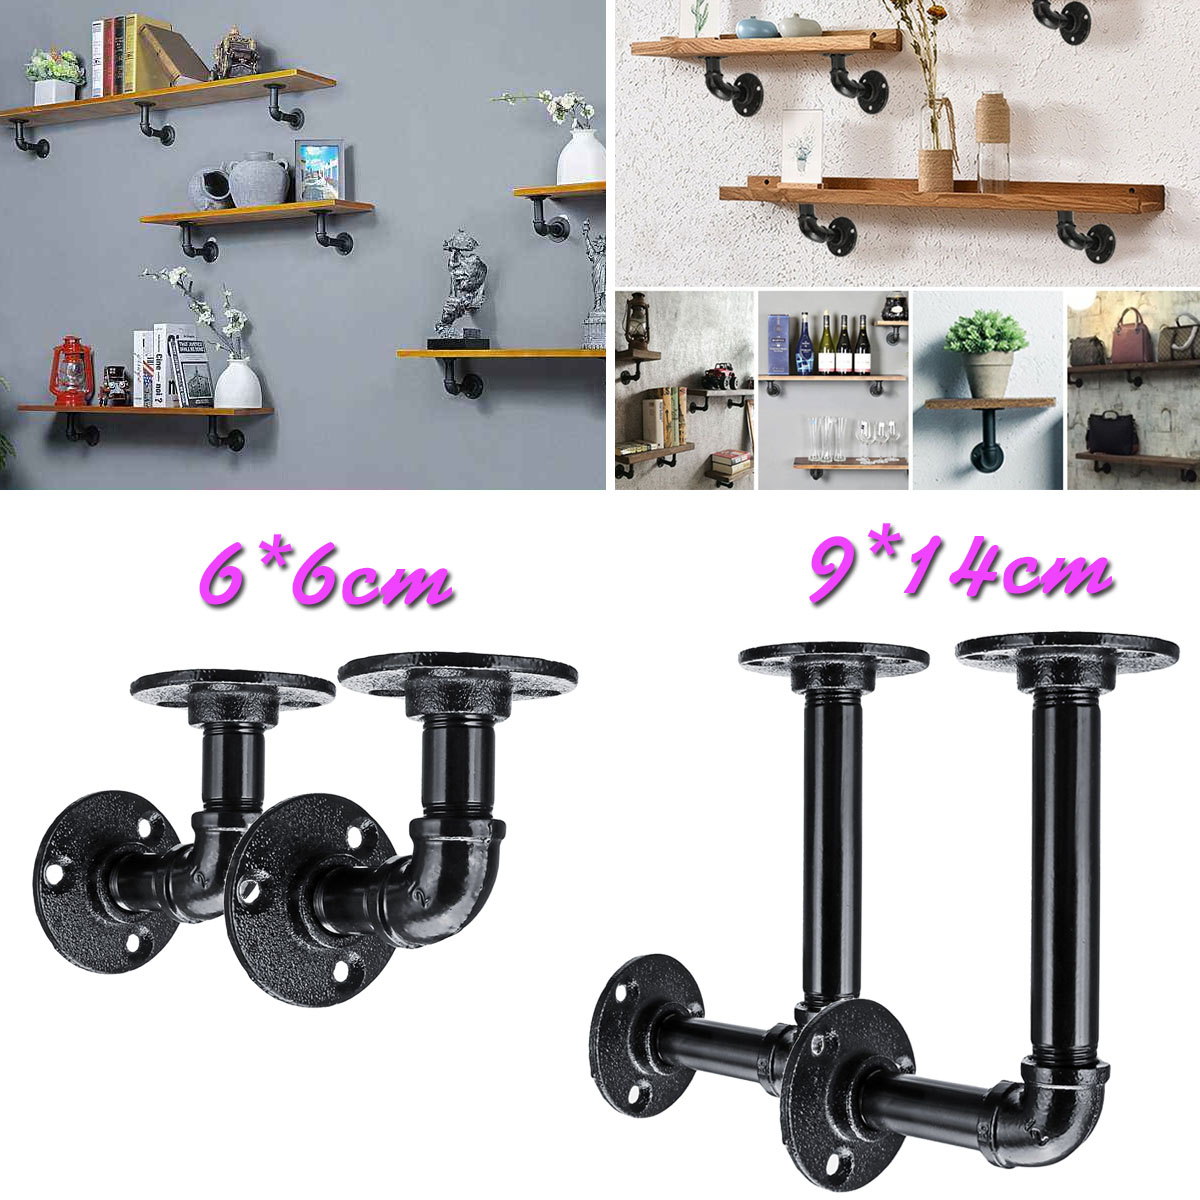 US $12 39 46% OFF|2Pcs Pipe L Bracket Wall Floating Shelf Vintage Retro  Black Iron Industrial Pipe Shelf Bracket Holder Home Decor Storage  Holder-in